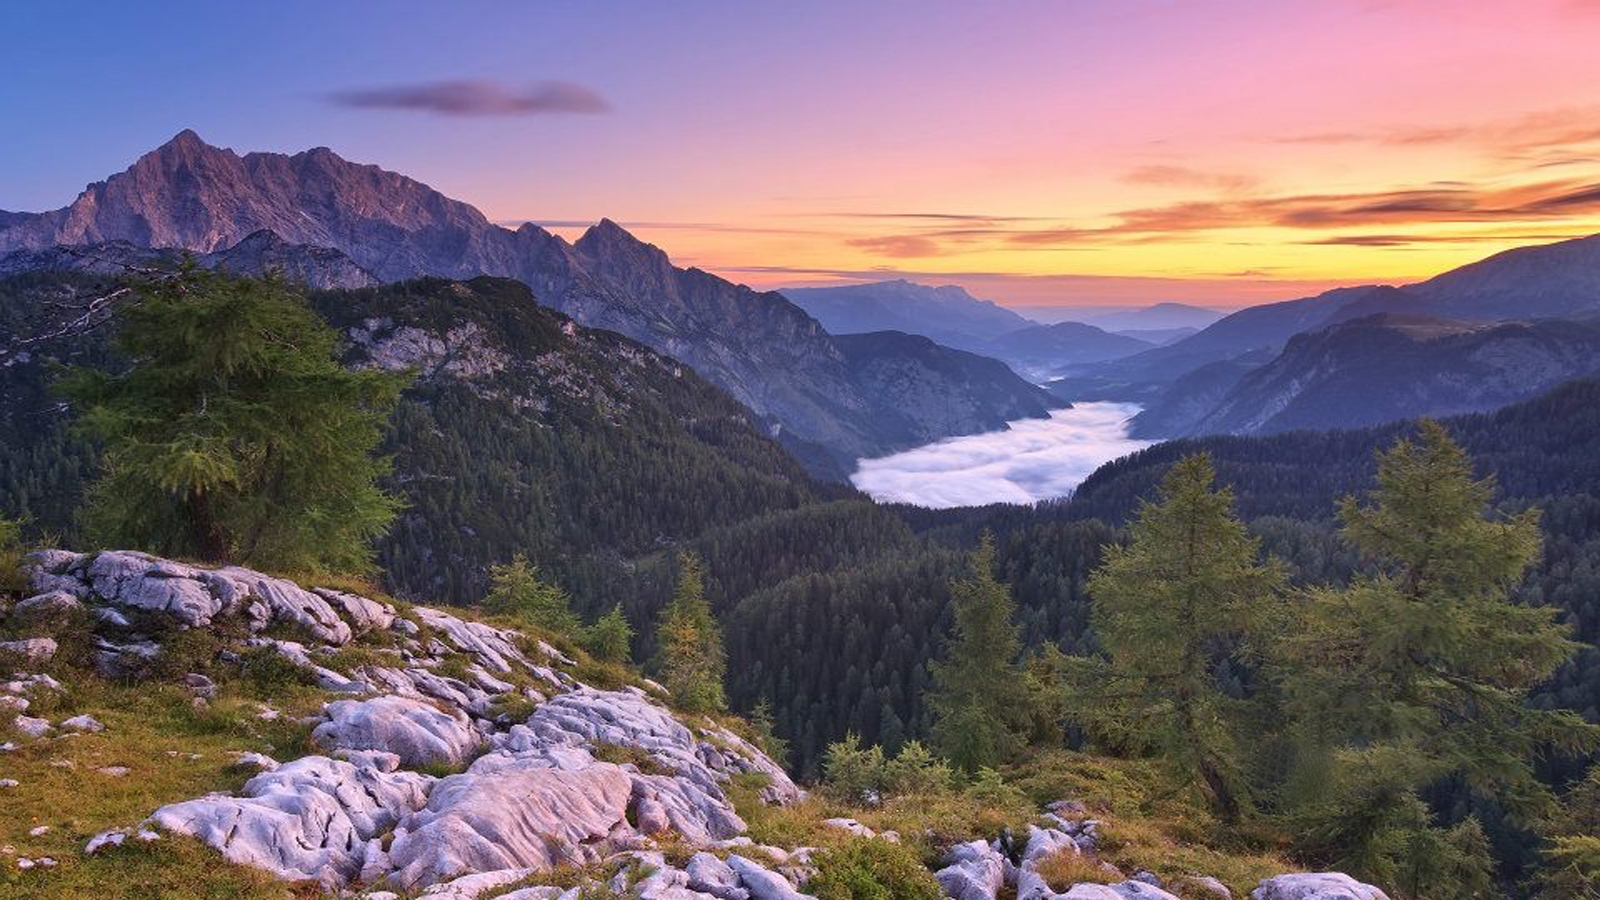 mountains backgrounds. Free Most Beautiful Mountains Pictures HD Widescreen High Resolutions Backgrounds Wallpapers Laptop Desktop 12 U